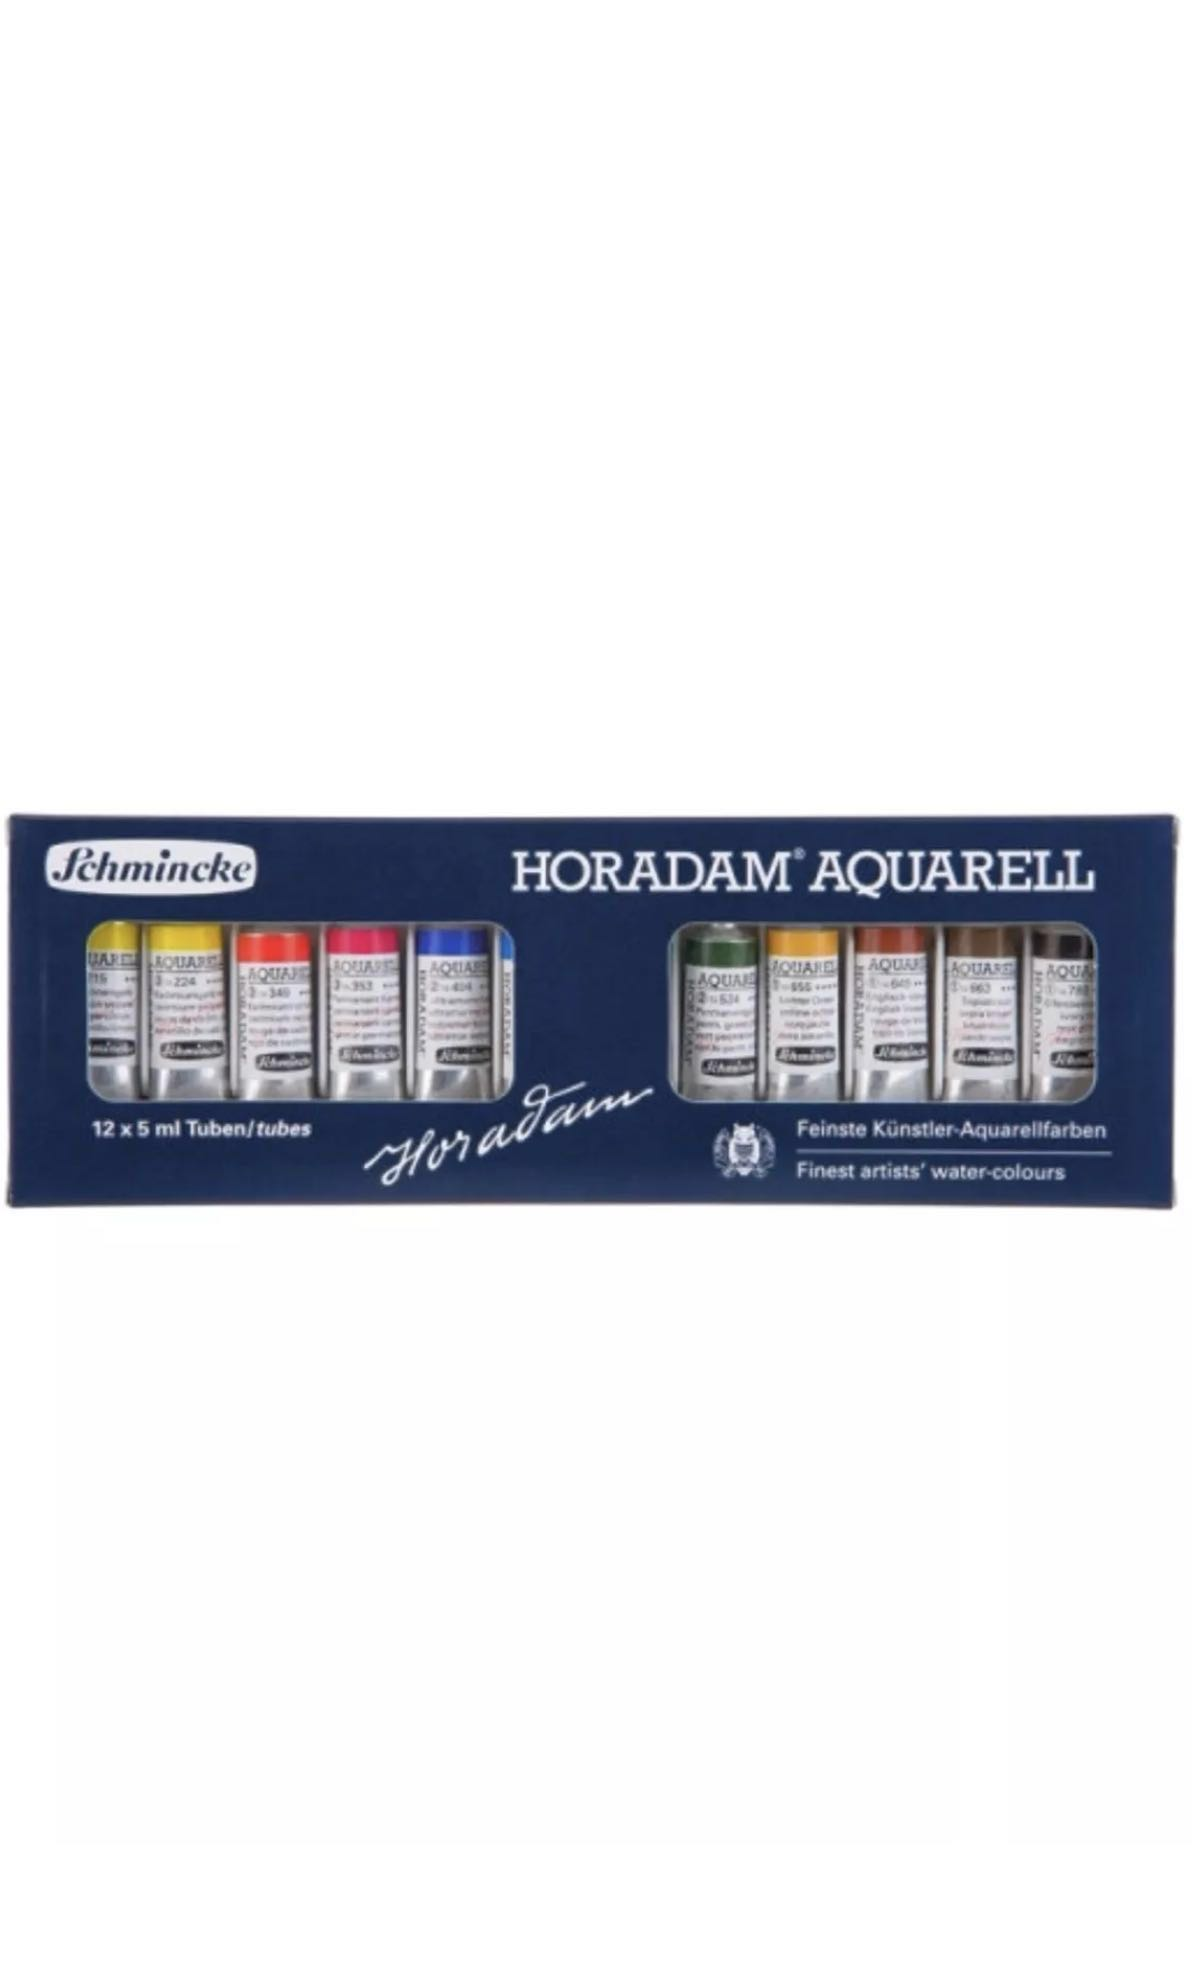 Schmincke Horadam Artist watercolor 12x5ml tube set FREE SHIPPING